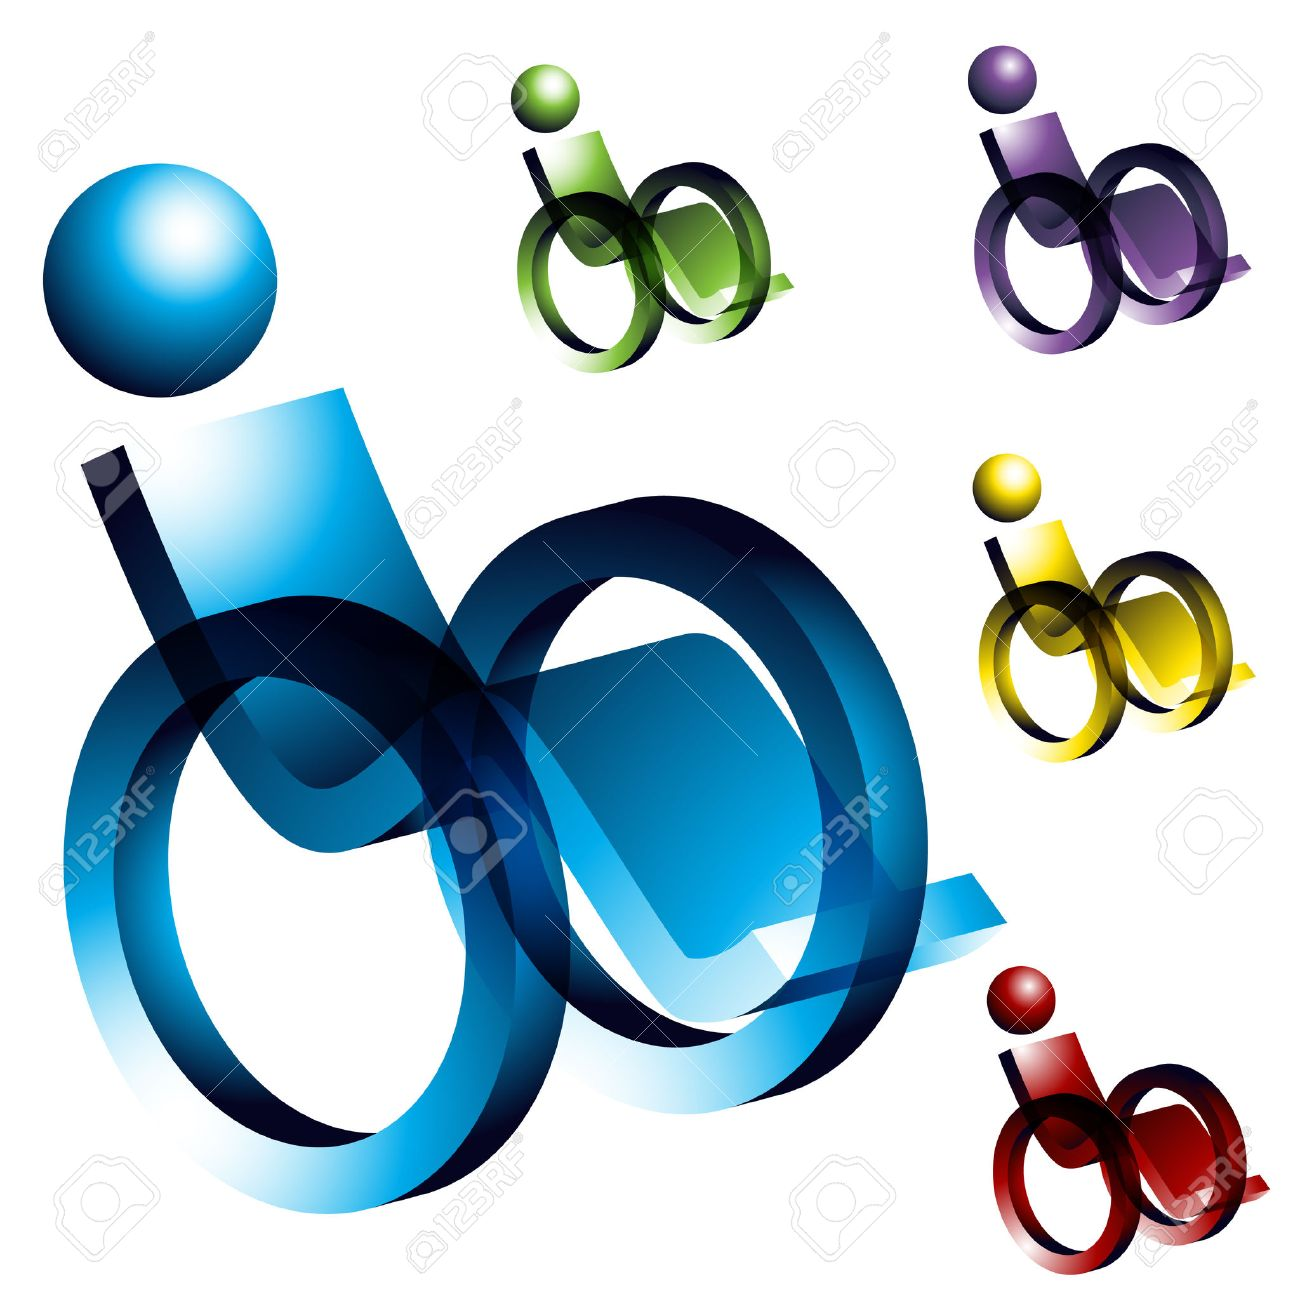 An image of 3d wheelchair icons. Stock Vector - 7945443